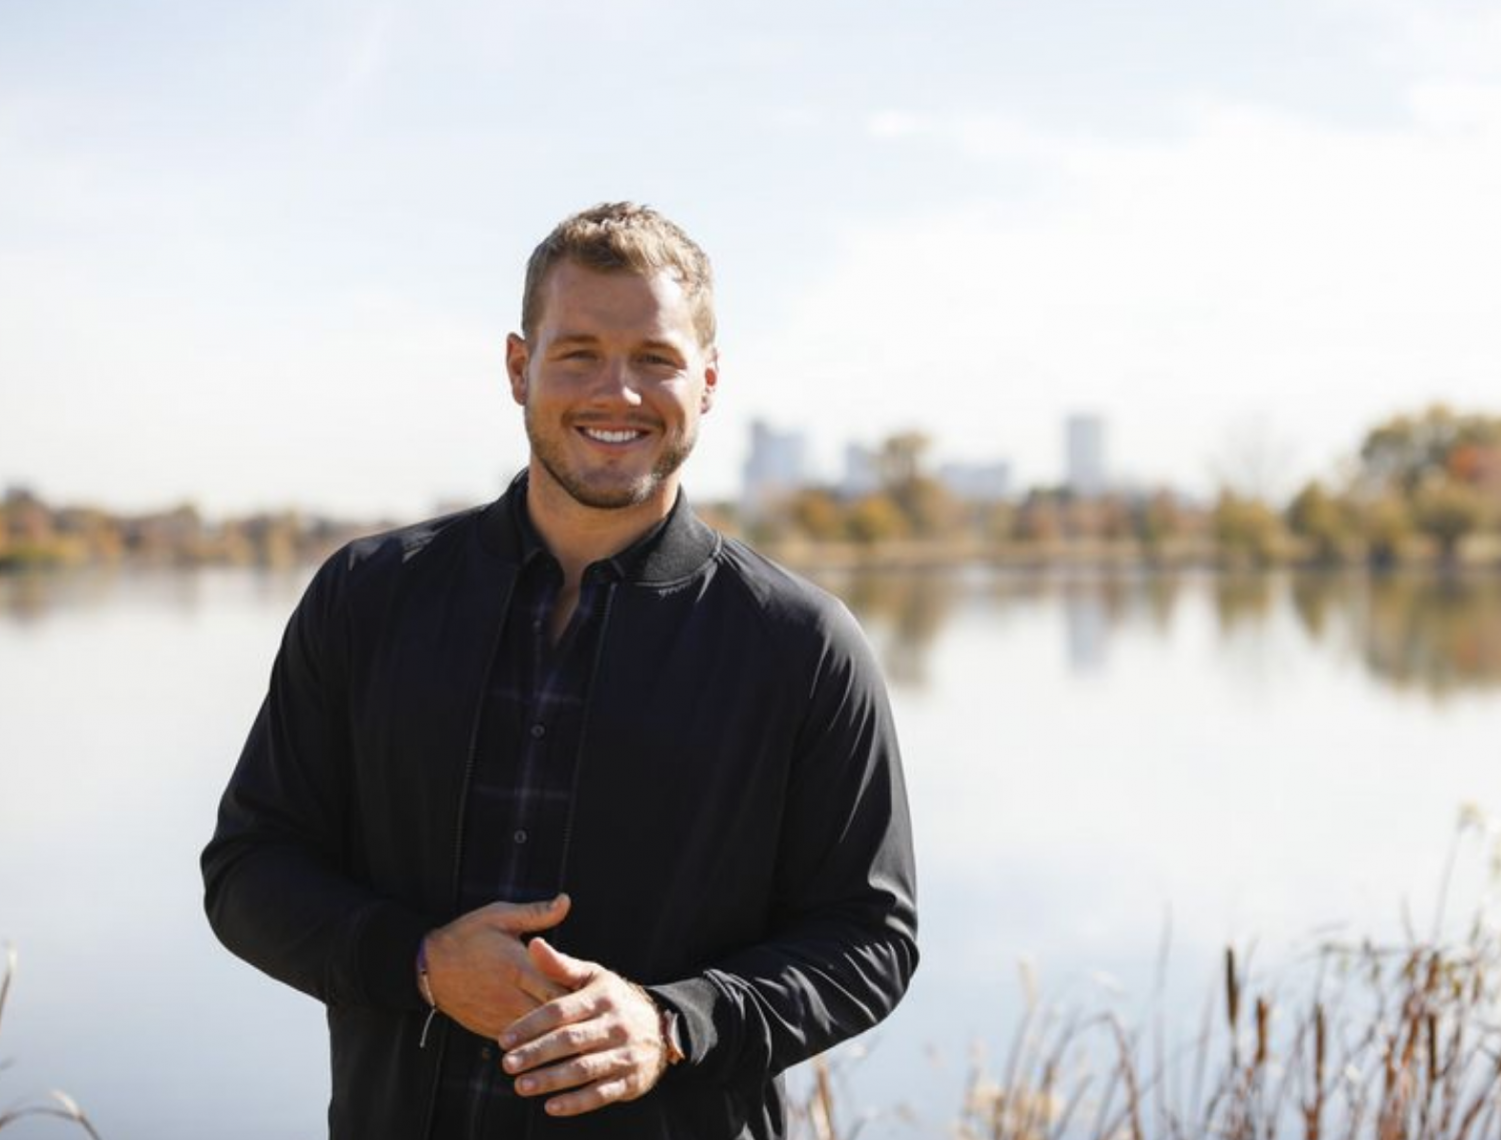 Colton Underwood named the 2019 Bachelor. The Bachelor can be viewed at 8 p.m. on ABC.